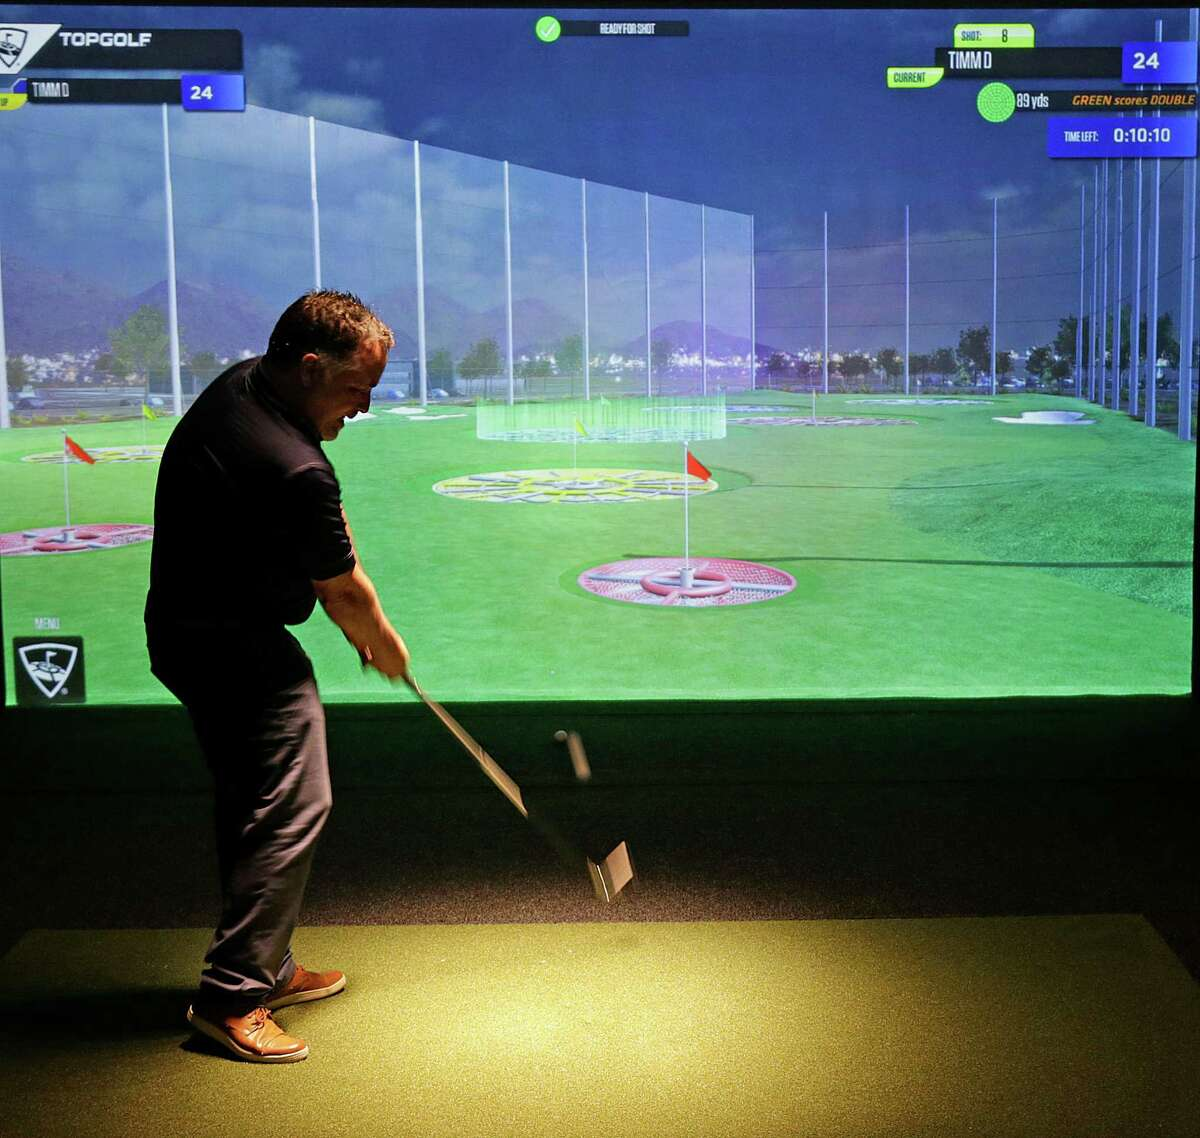 Houston Hotels to Stay: Take a break from all of that baseball with a round of Top Golf inside of the newly renovated Four Seasons Hotel. No caddy required.